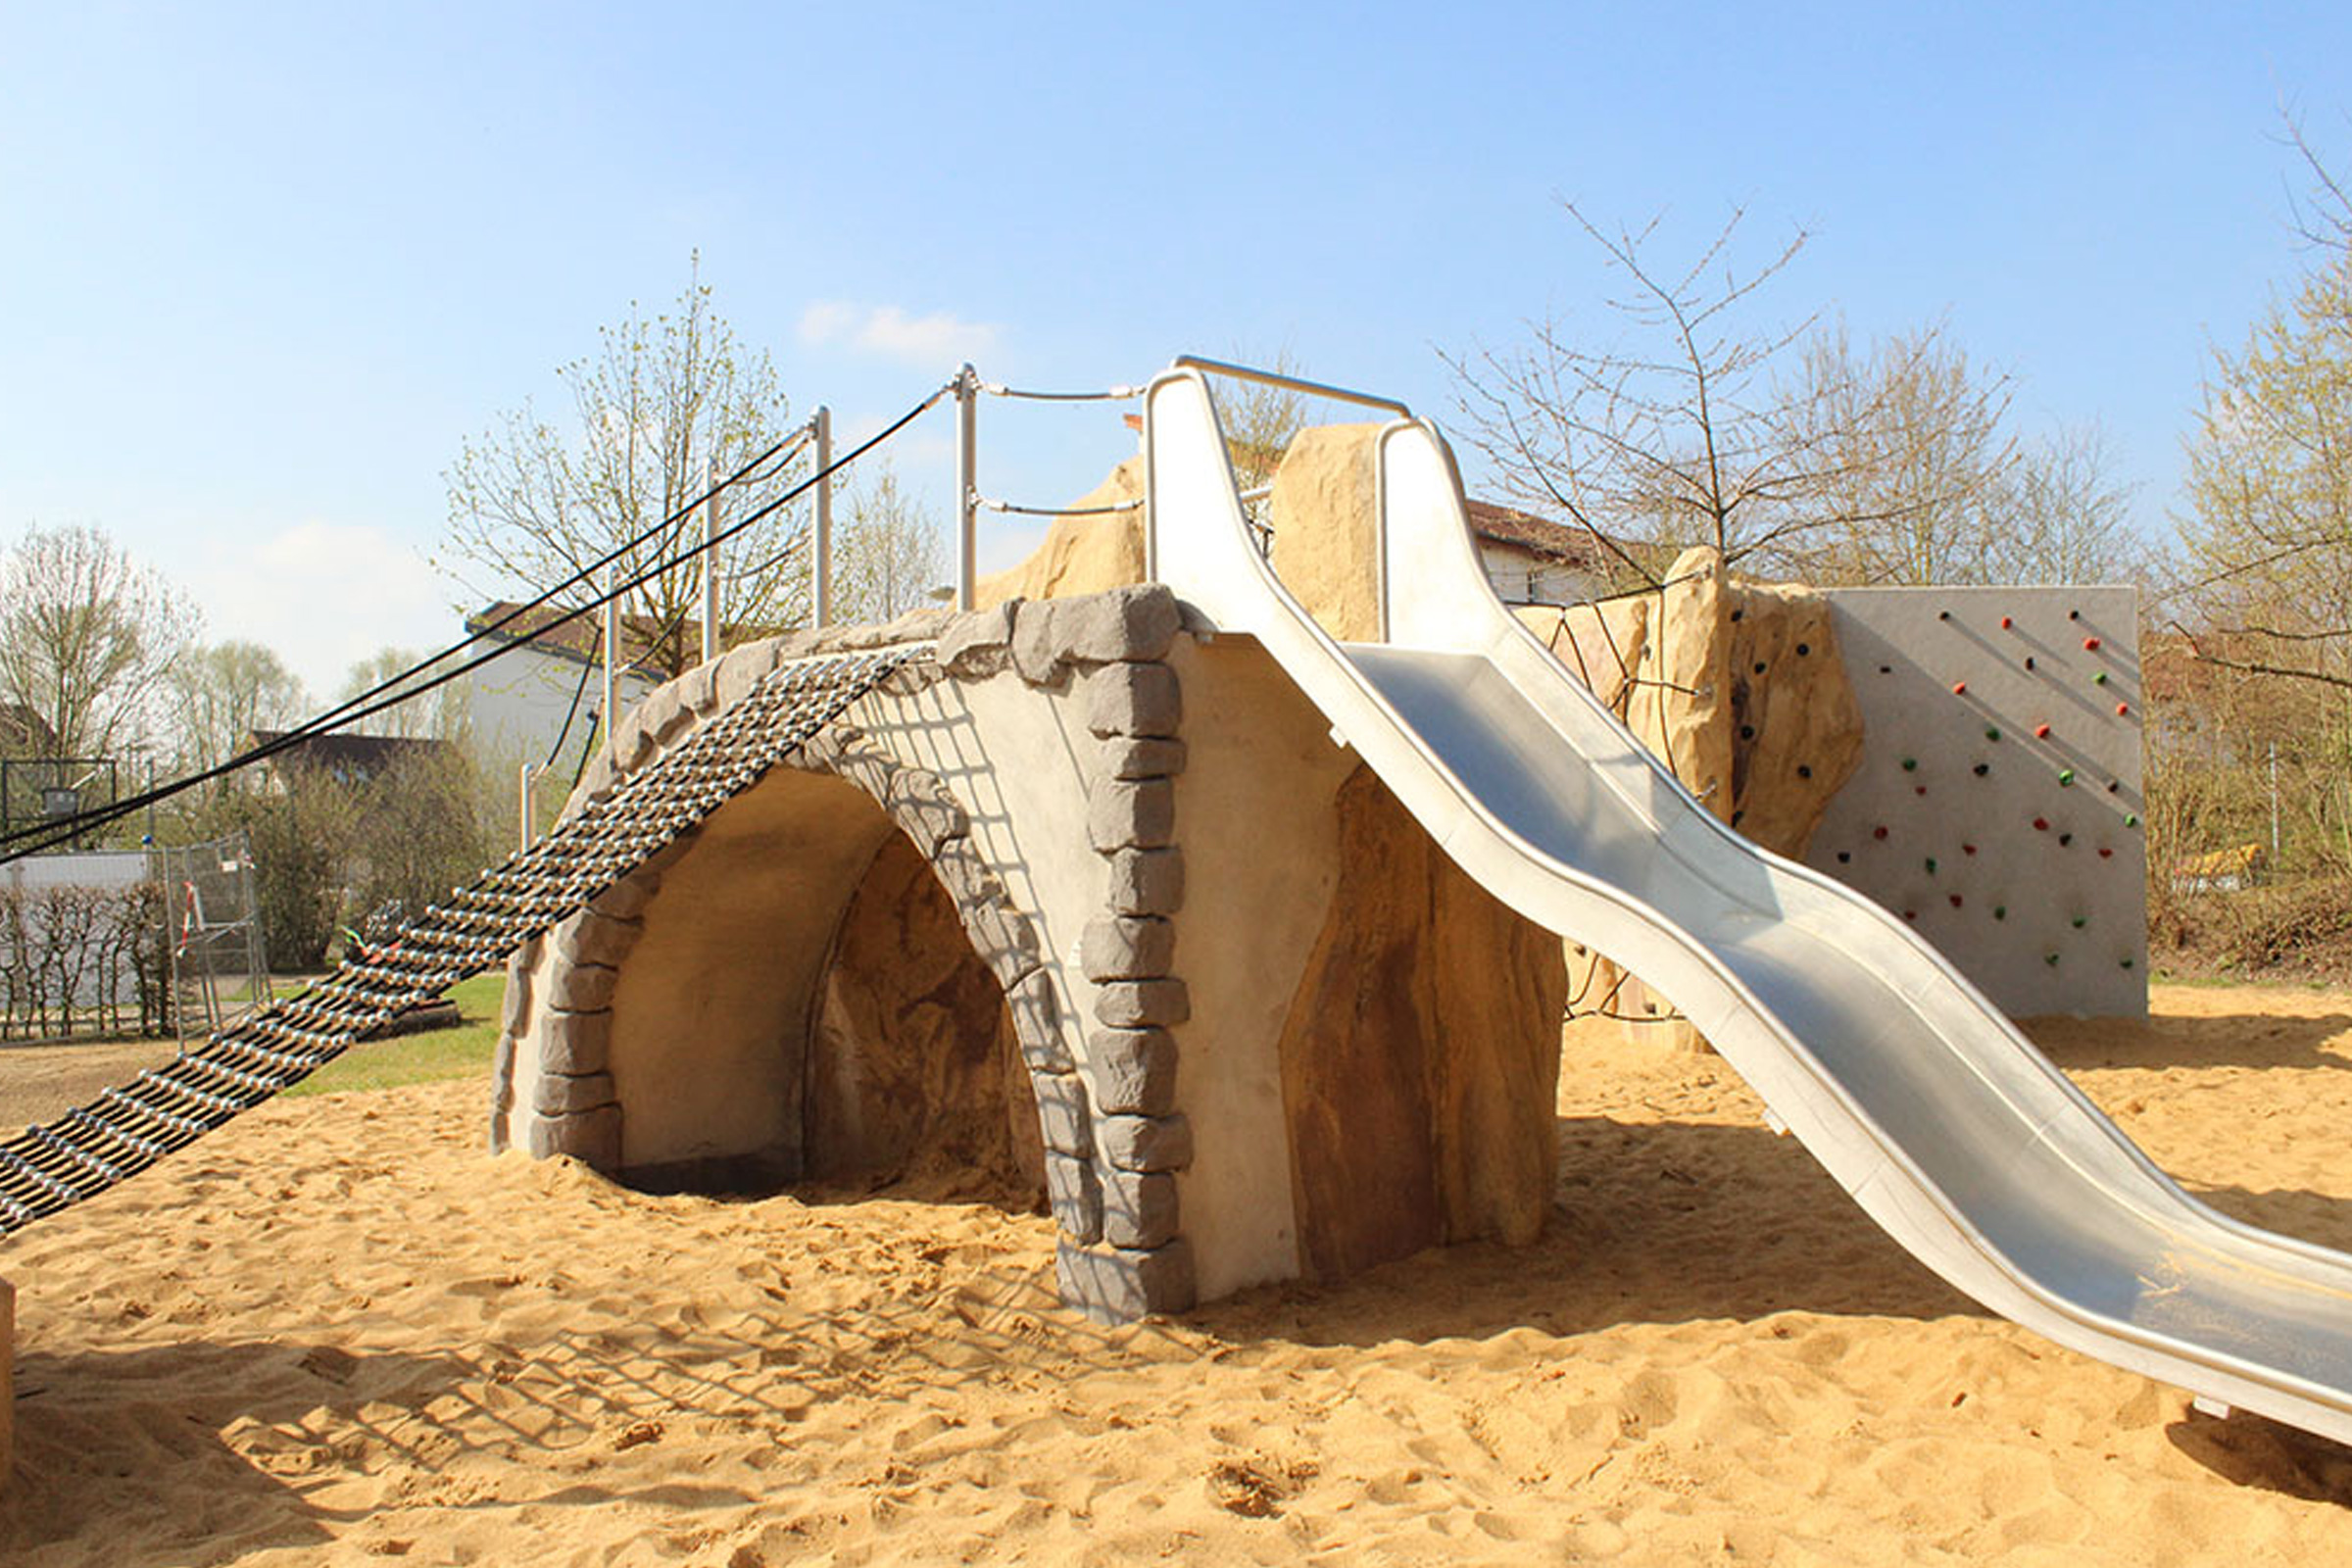 Spielplatz Glumke in Herford